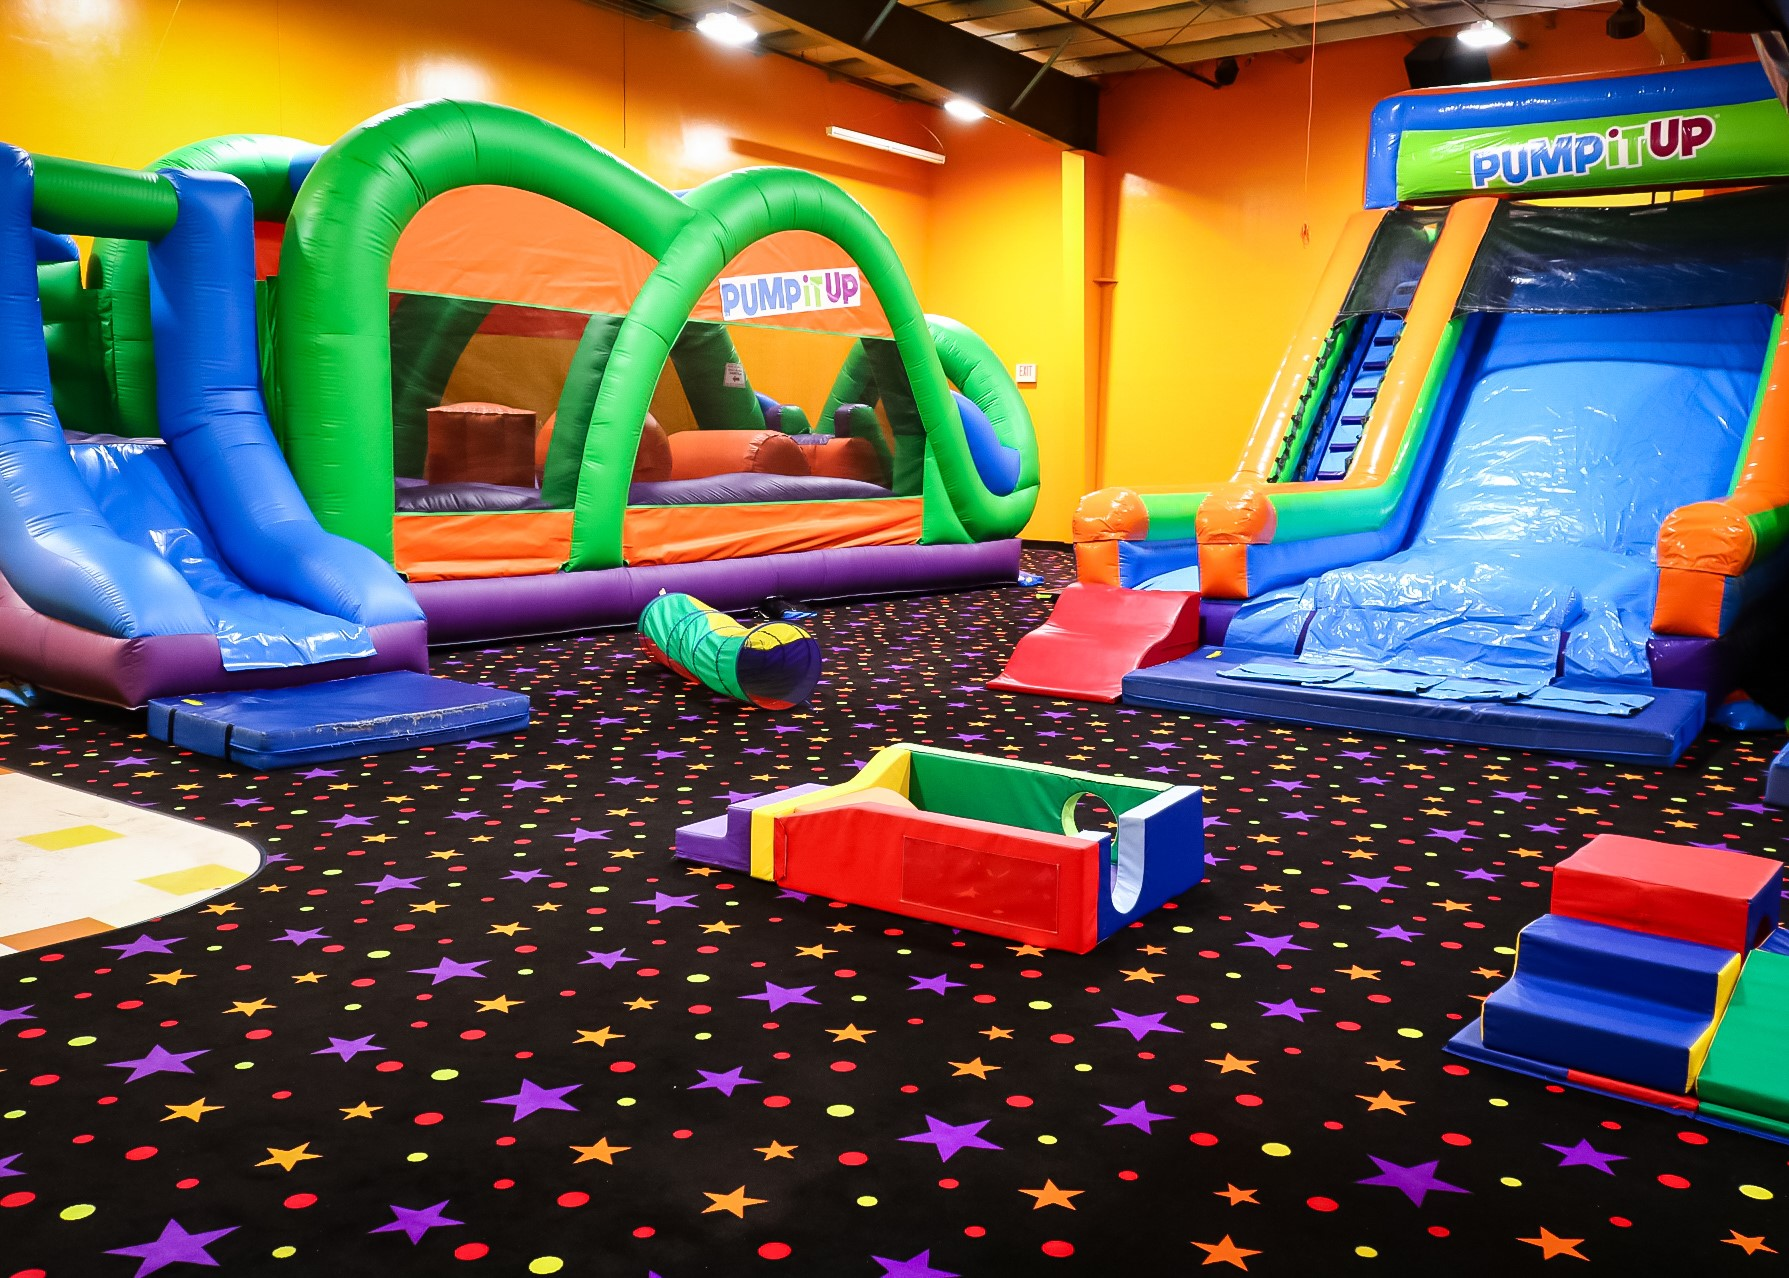 Pump It Up private party arena space with large inflatable rides with toddler soft play toys on the carpet.